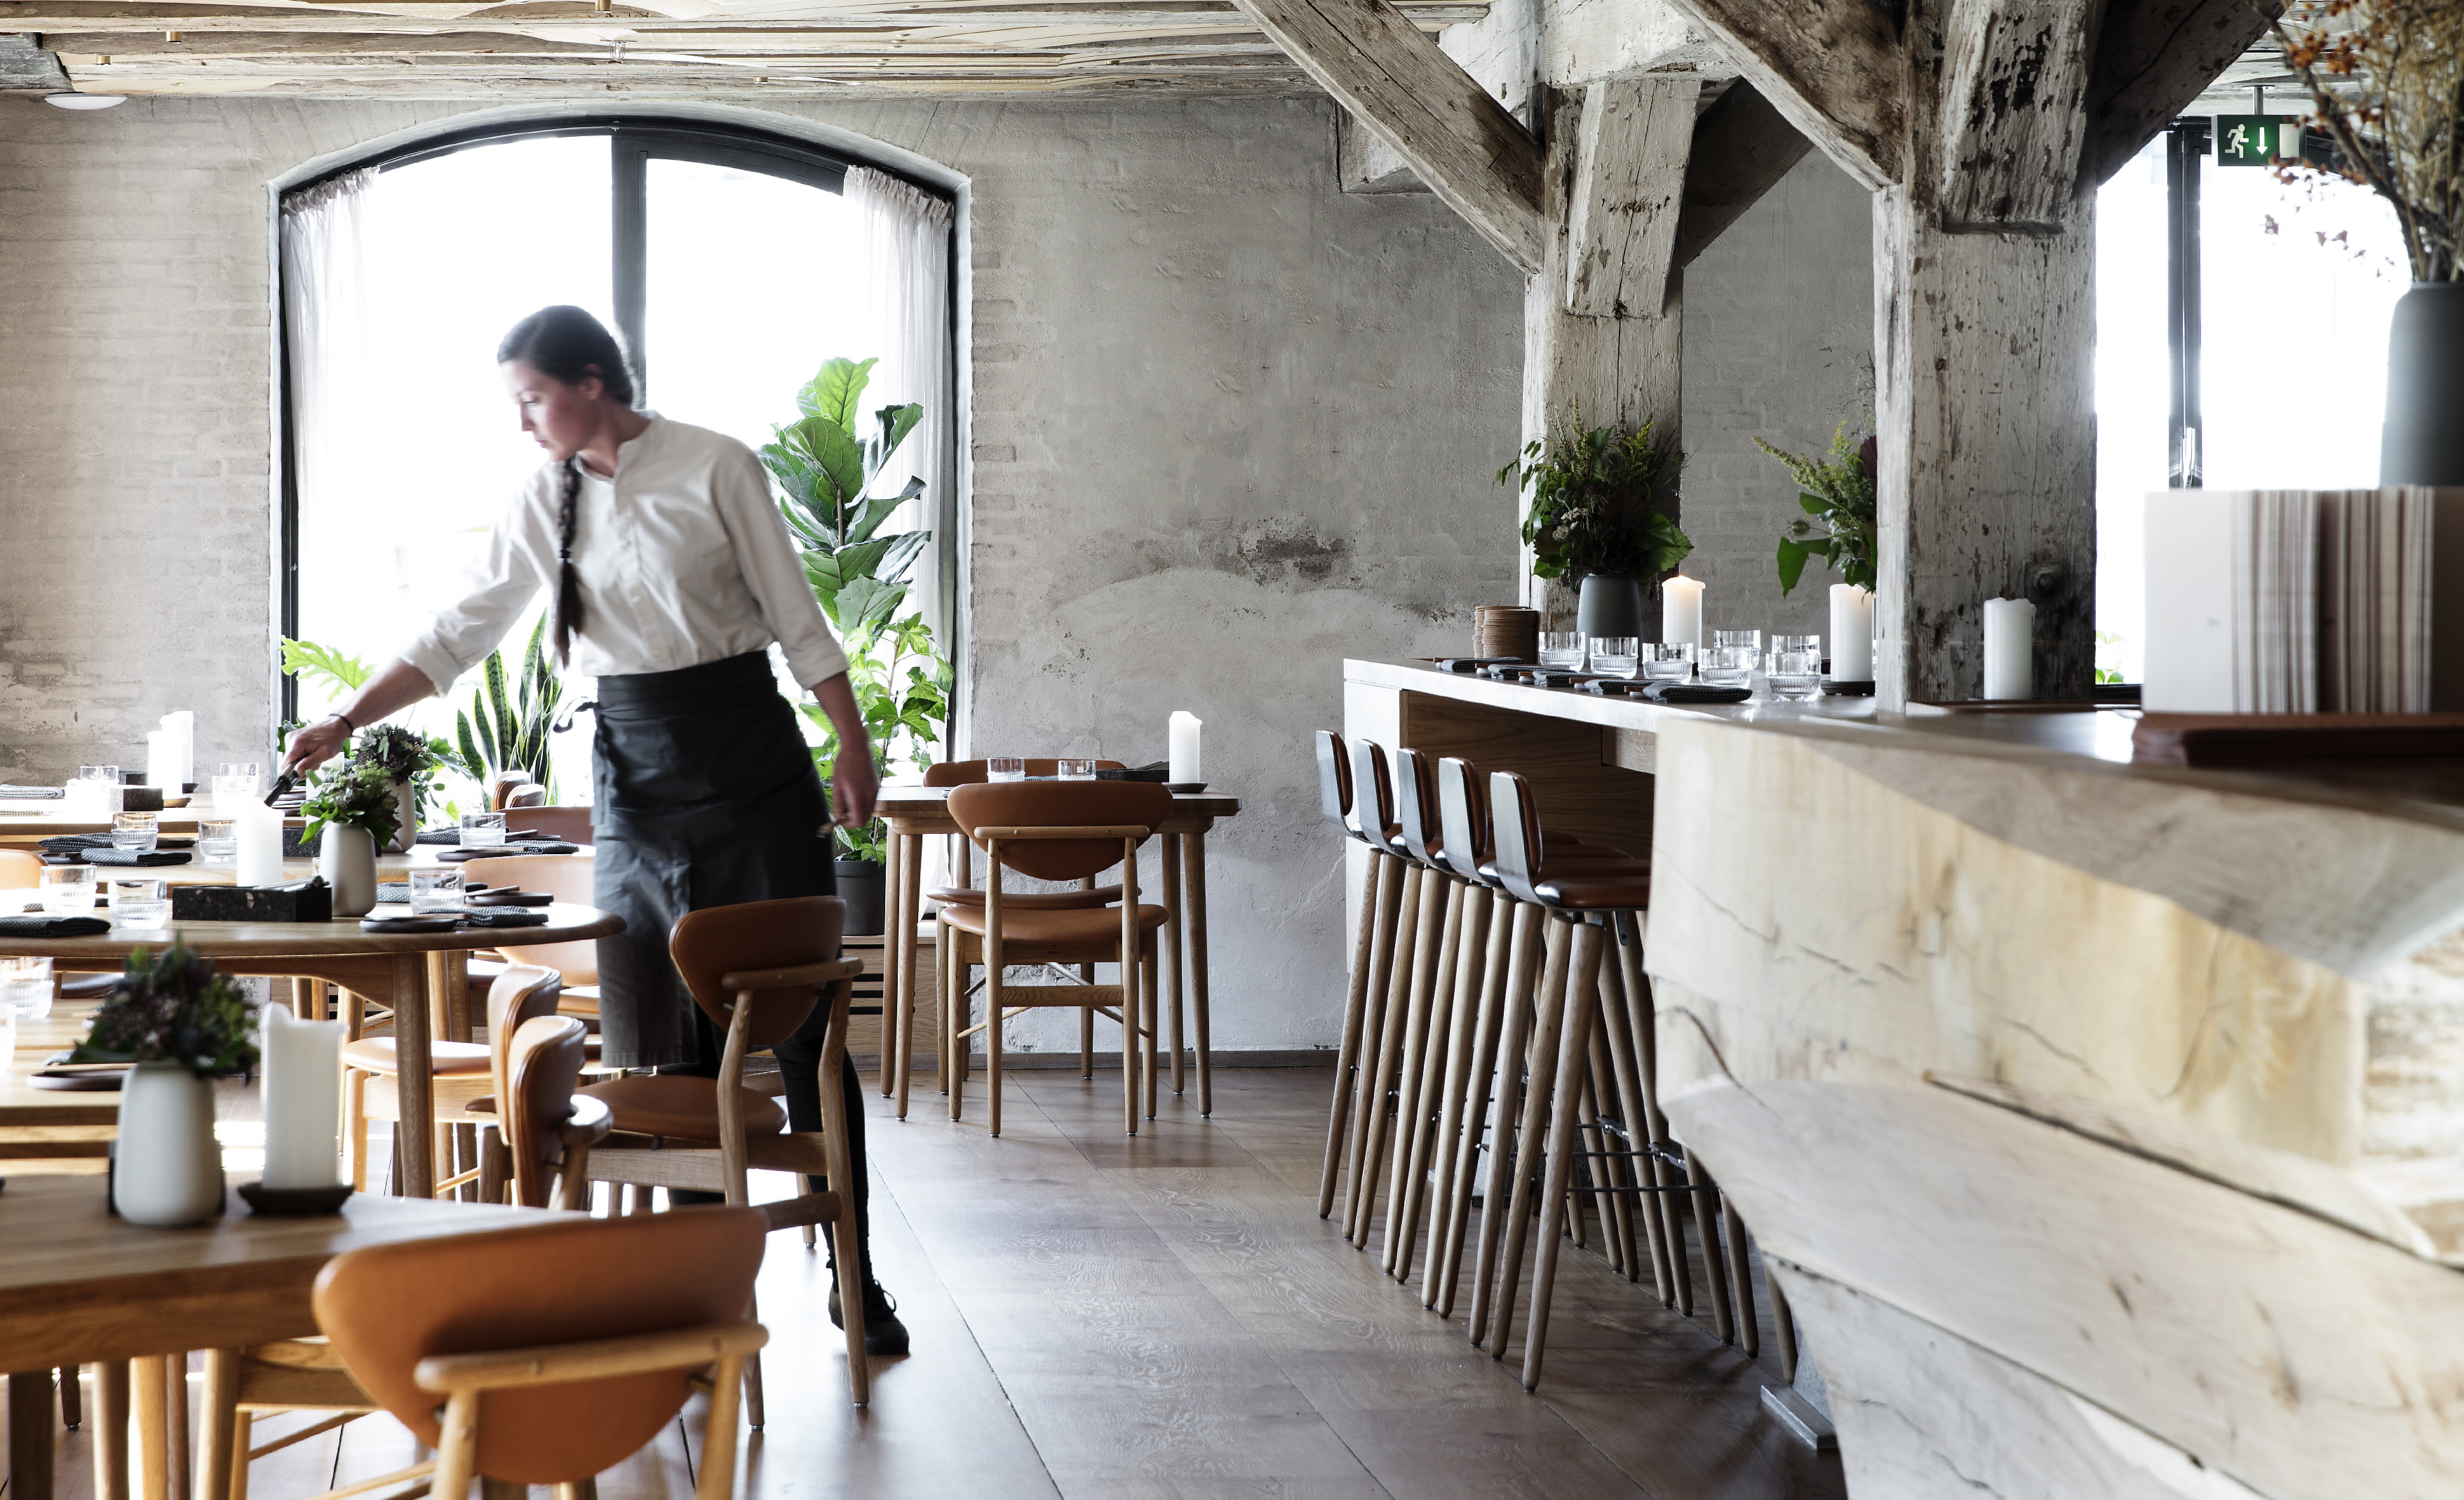 Restaurant Barr Reflects the Beauty of the North Sea Region